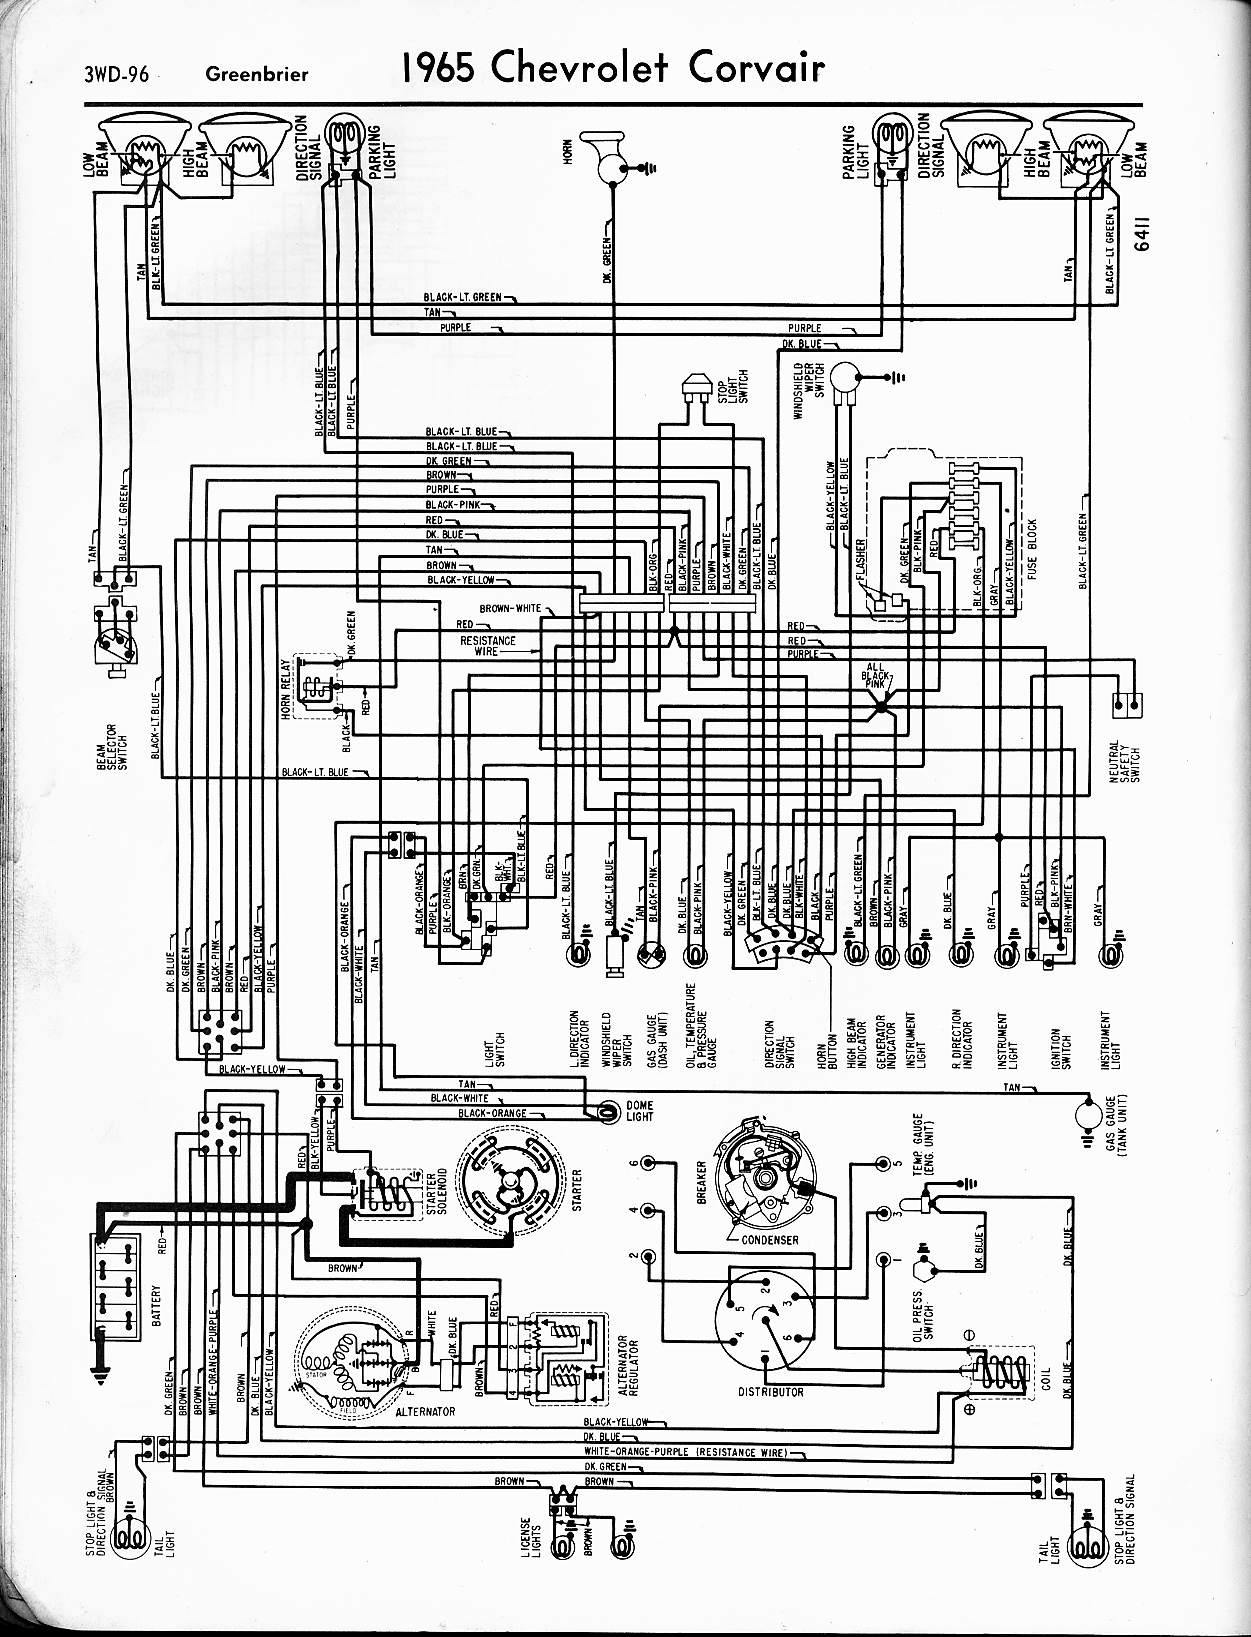 1965 Malibu Wiring Diagram | Wiring Liry on antenna diagram, voltage regulator diagram, fan clutch diagram, horn diagram, belt tensioner diagram, ac condenser diagram, torsion bar diagram, headlight diagram, wheel diagram, clutch master cylinder diagram, exhaust manifold diagram, blower motor diagram, cylinder head diagram, crankshaft diagram, ecm diagram, oil pump diagram, alternator diagram, brake master cylinder diagram, ignition switch diagram, front brake diagram,